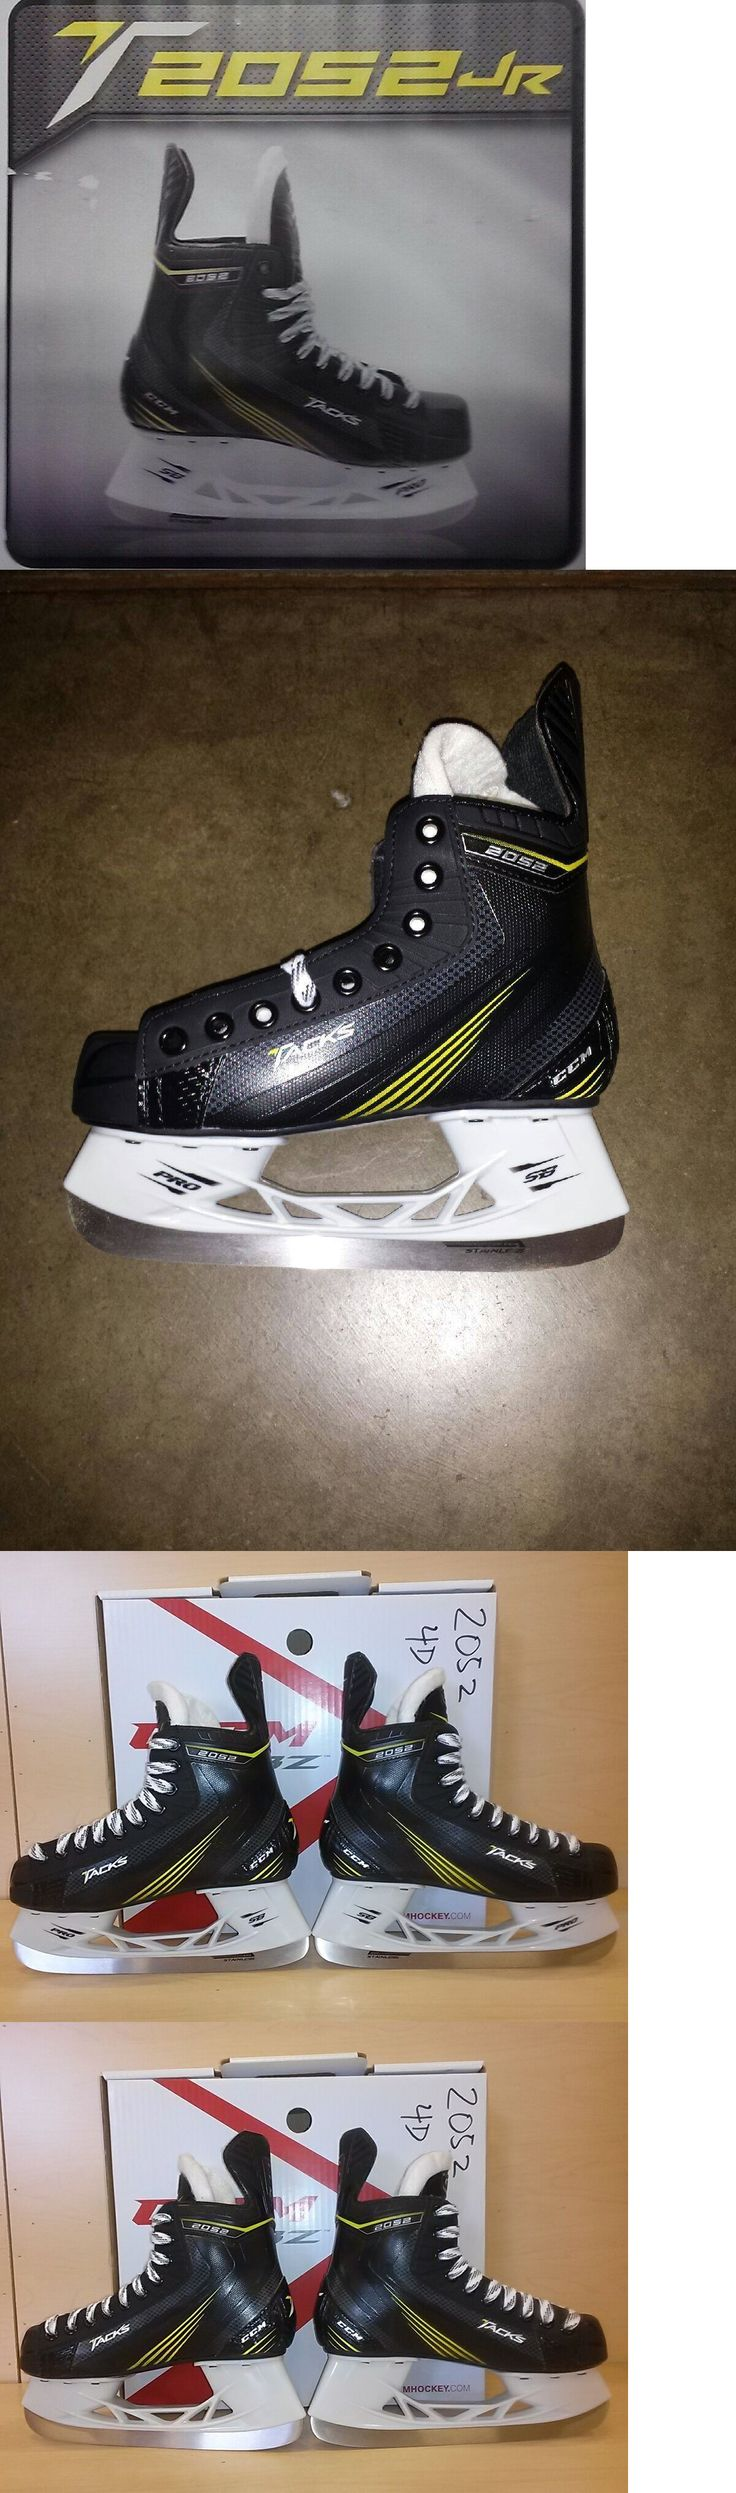 Ice Hockey-Youth 26342: New Ccm Tacks 2052 Junior Ice Hockey Skates -> BUY IT NOW ONLY: $89.99 on eBay!